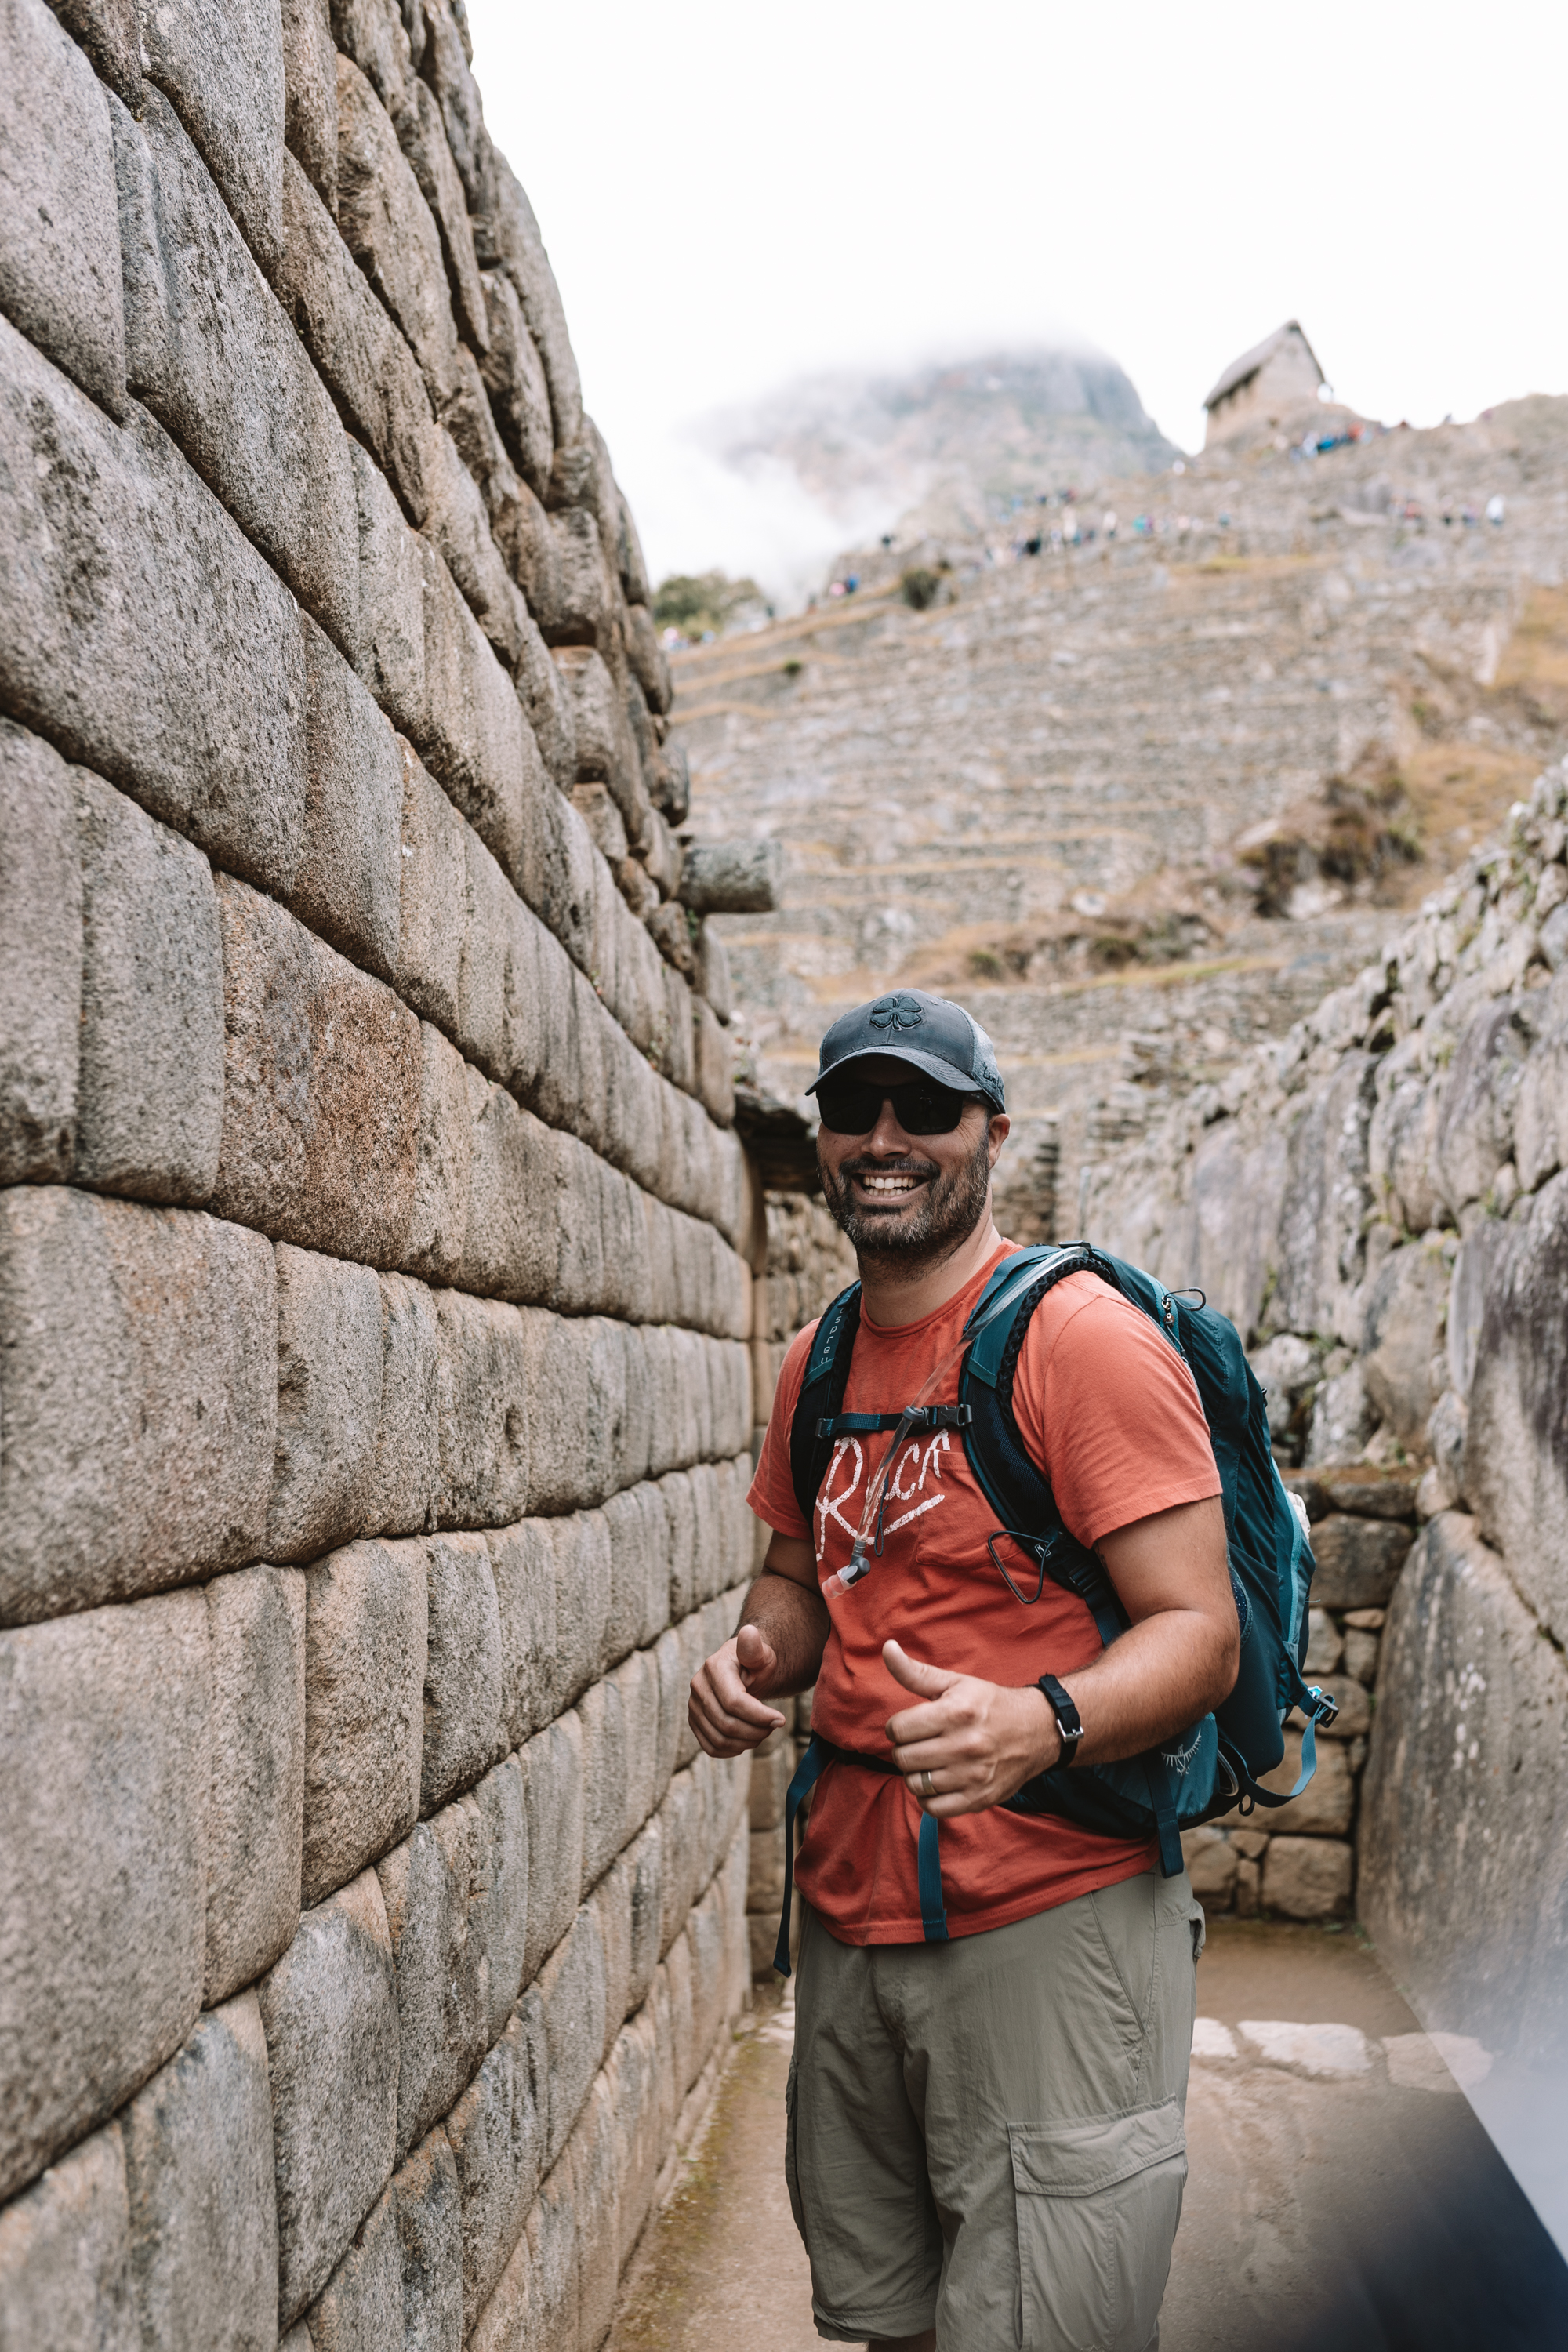 incredible architecture created by the ancient Incans at Machu Picchu #peru #magicaljourney